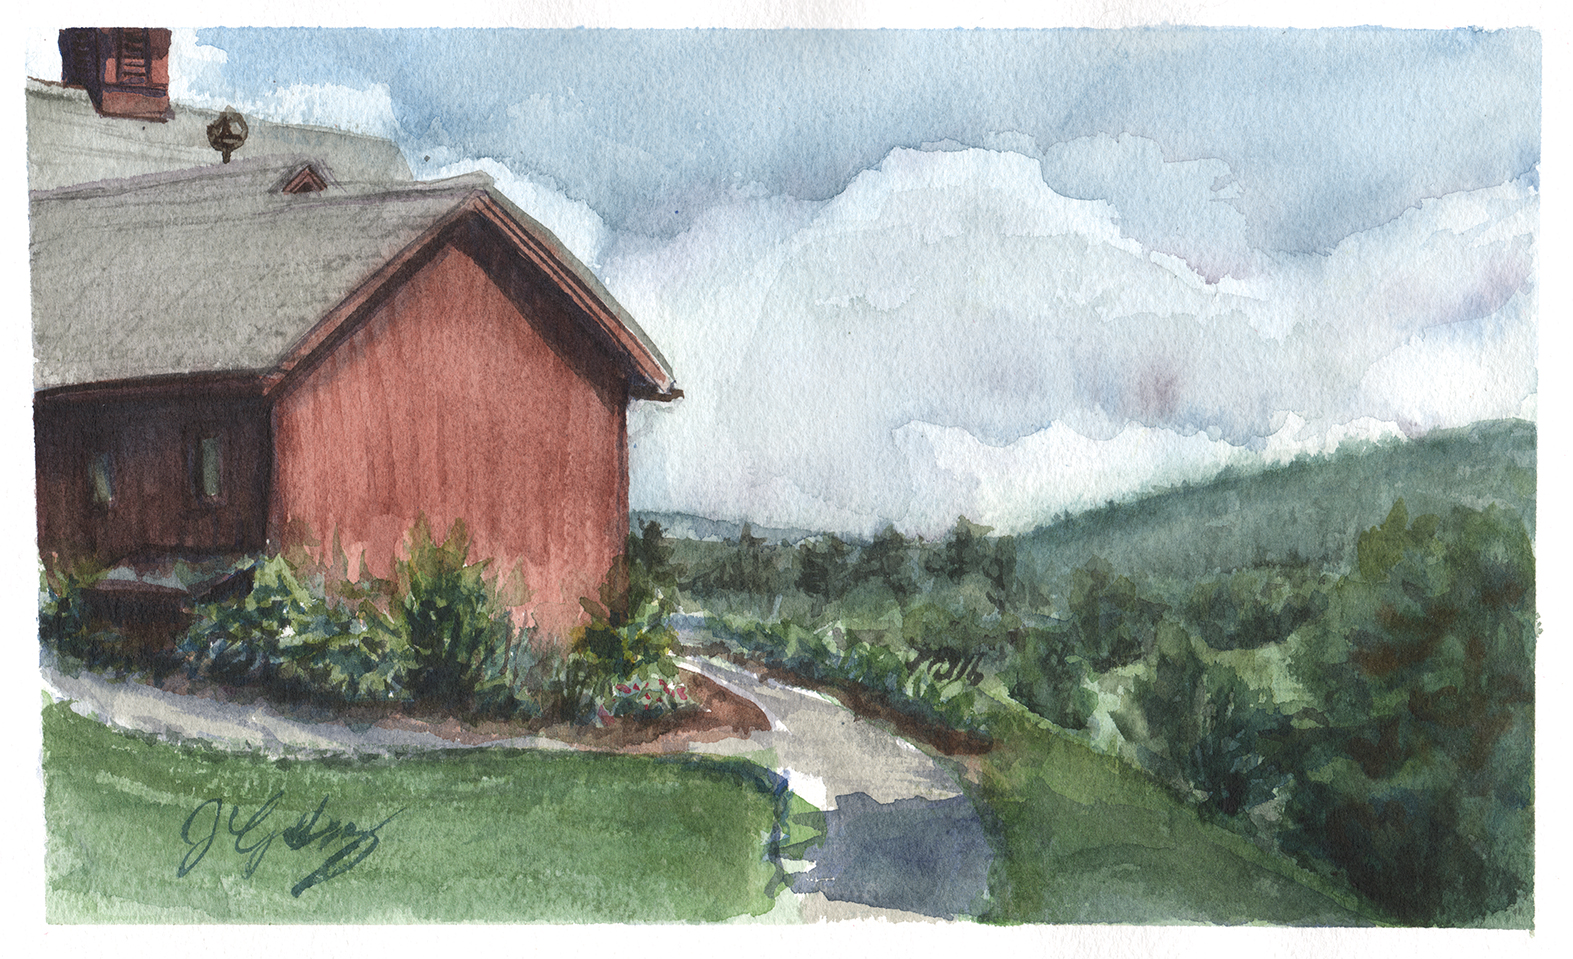 Norman Rockwell Studio Valley View - June 23, 2019